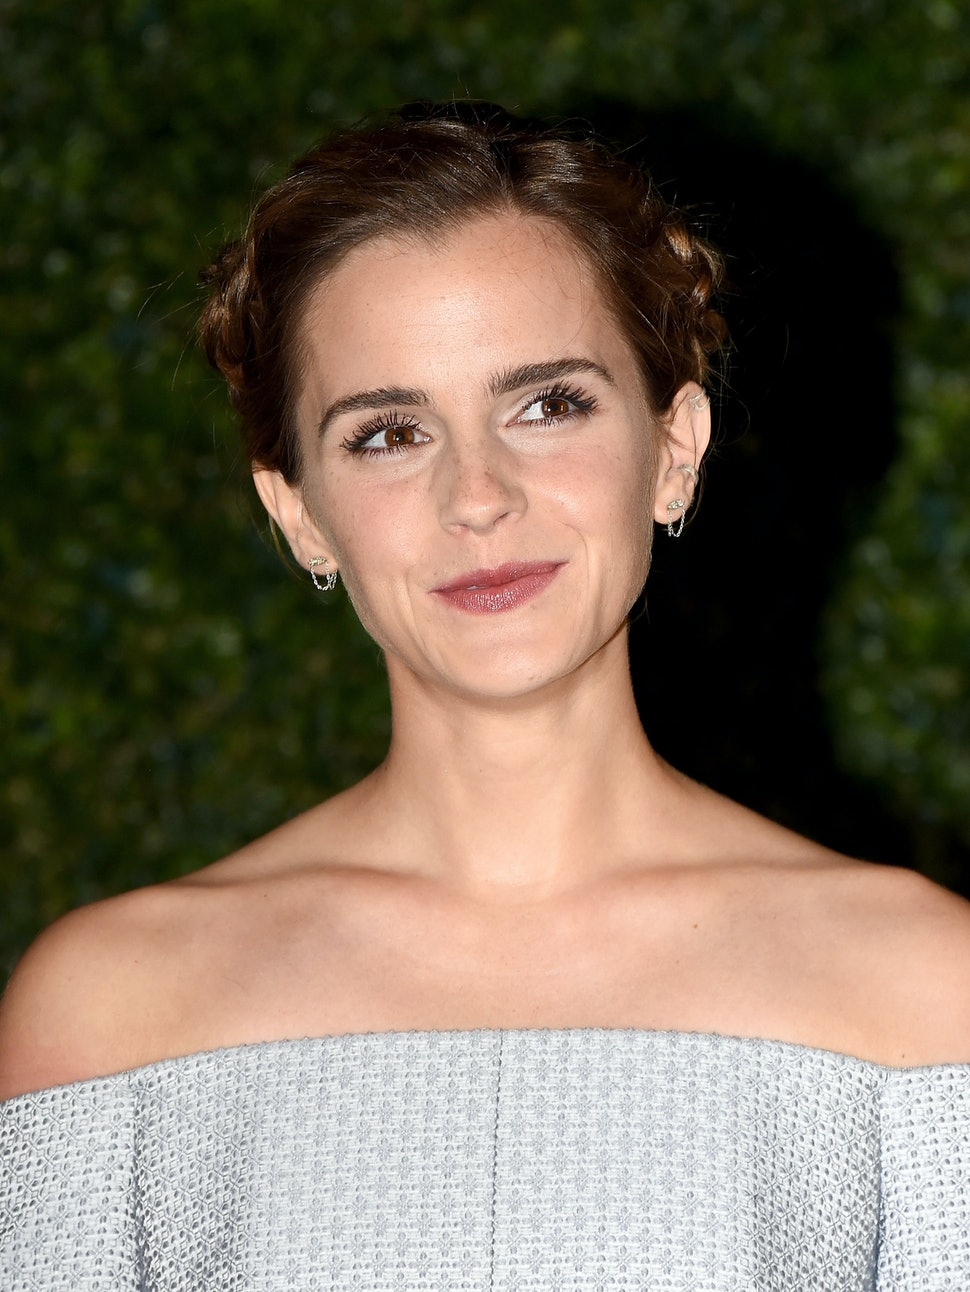 Emma Watson Quotes That Define Feminism In A Way Anyone Can Understand